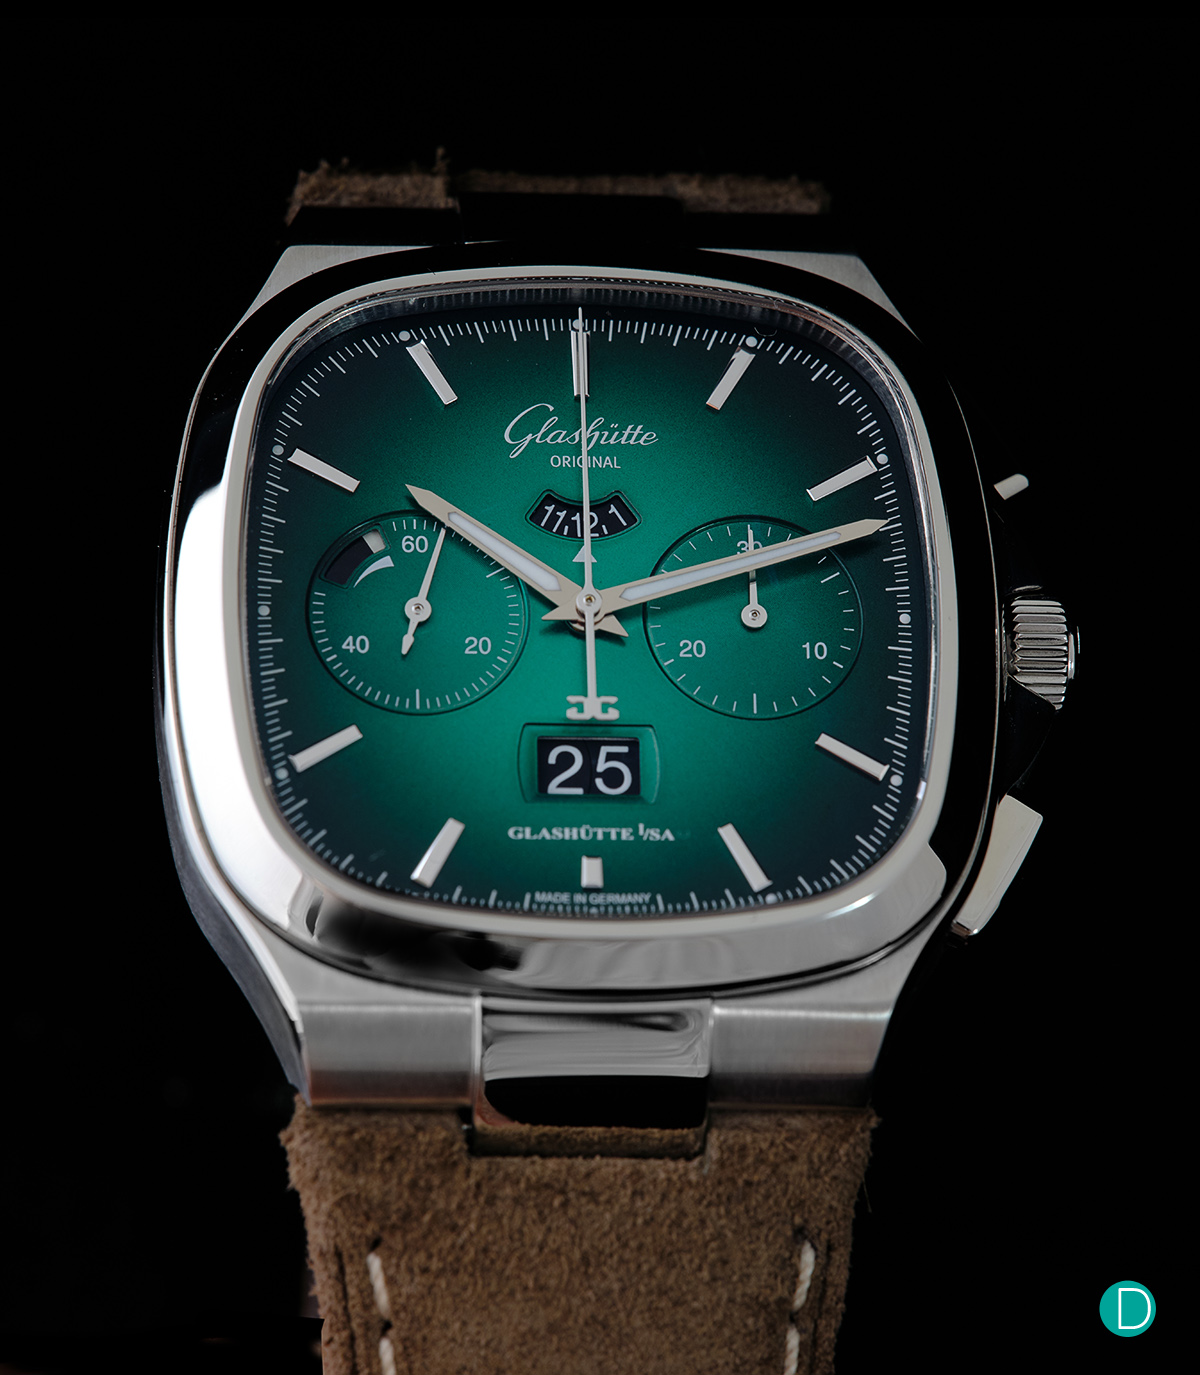 Just released and reviewed: Glashütte Original Seventies Chronograph Panorama Date Special Limited Edition in Green and Grey -